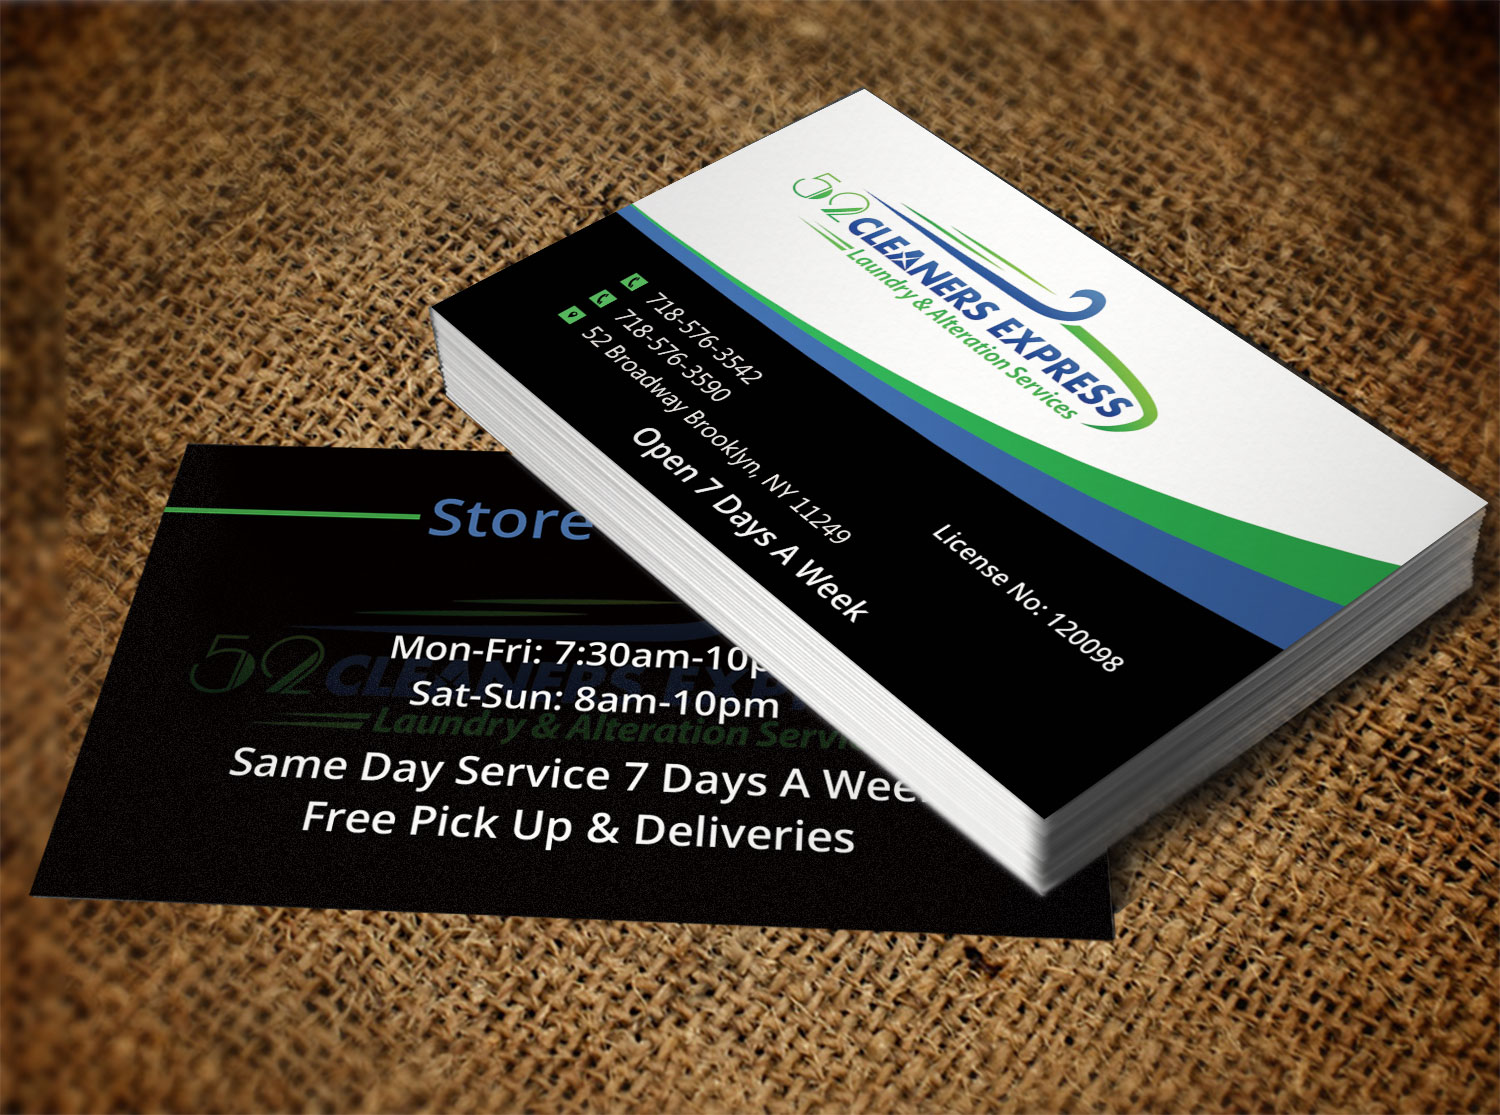 Elegant playful business business card design for micro express business card design by creation lanka for micro express consulting design 8429324 colourmoves